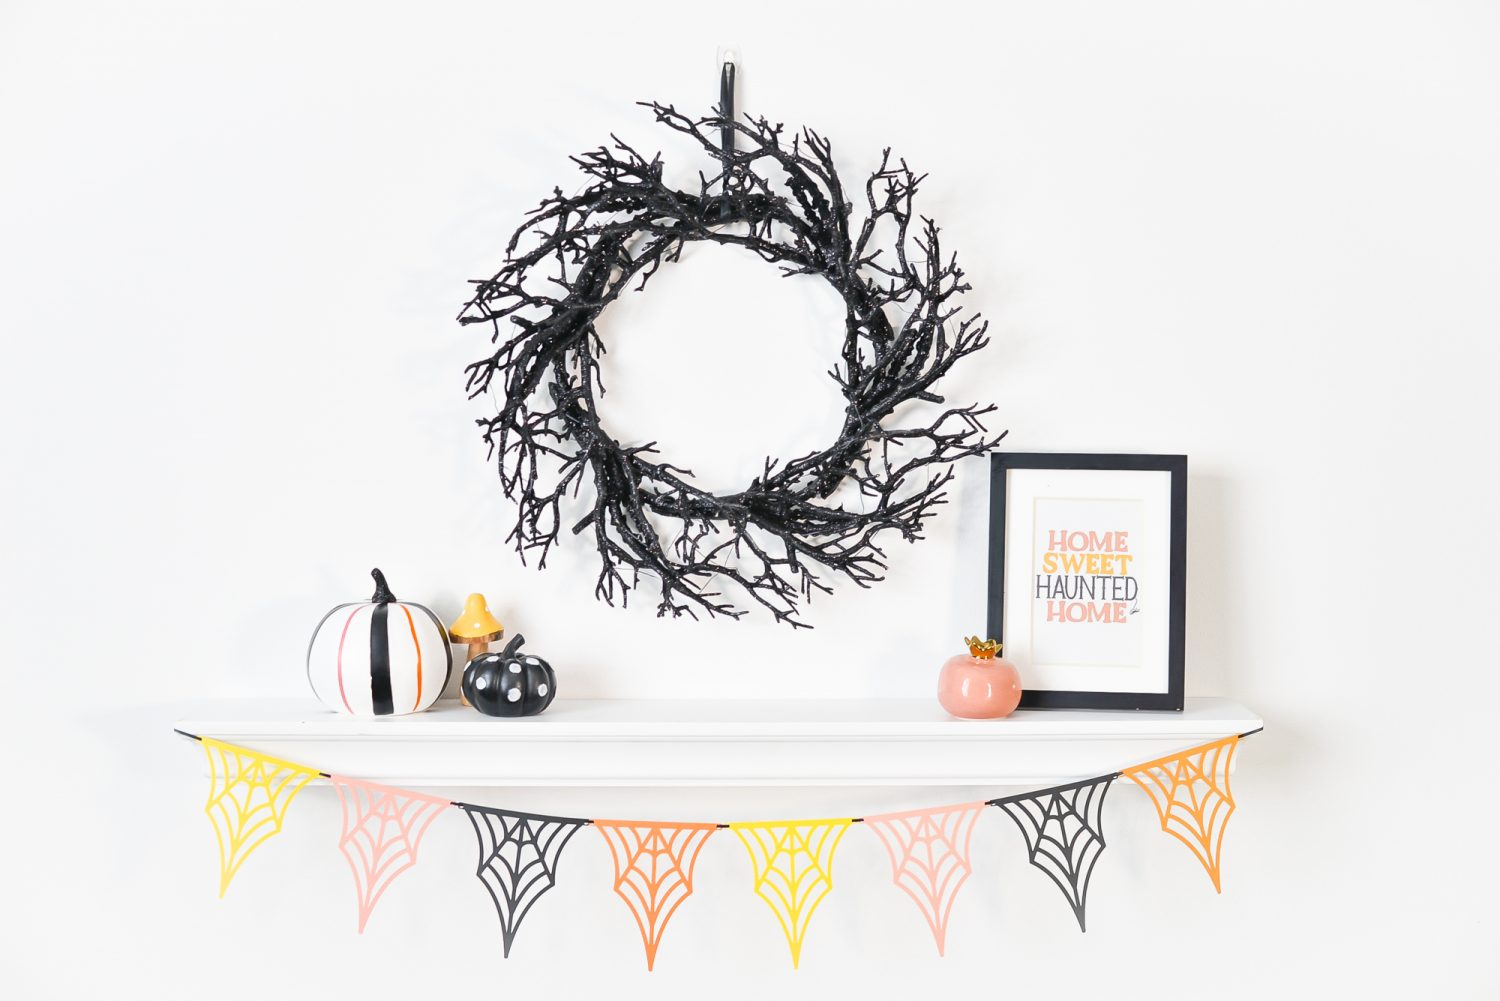 Spider web banner hanging from shelf with Halloween decorations